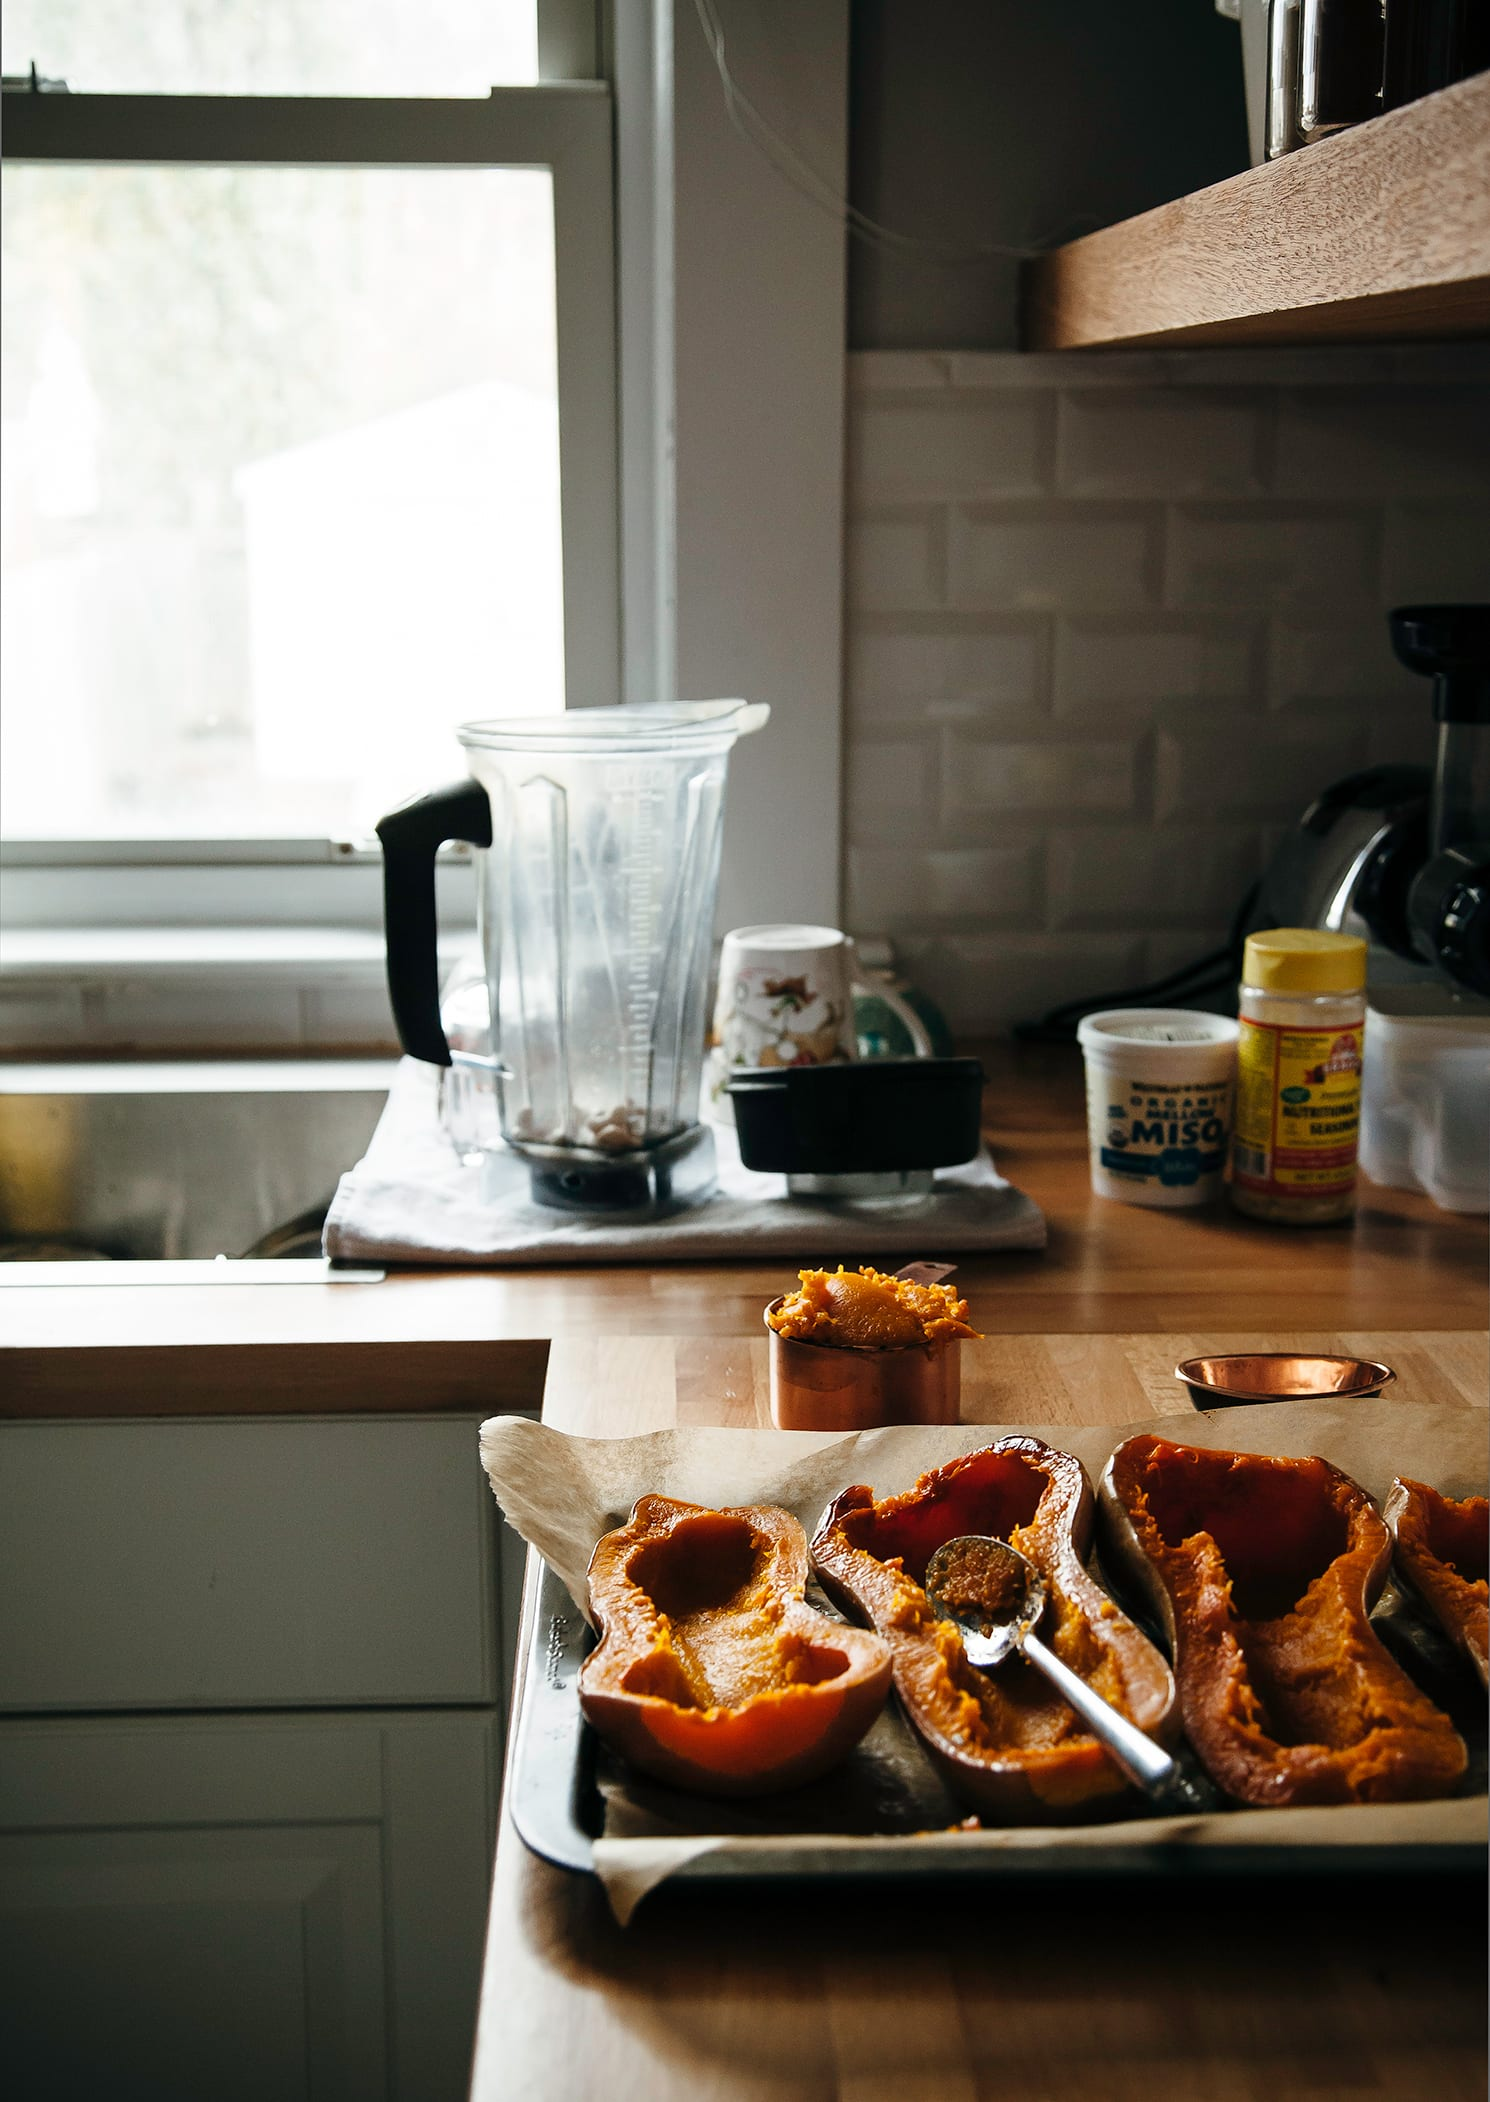 A kitchen scene shows a tray of roasted butternut squash halves and a blender pitcher on the counter.